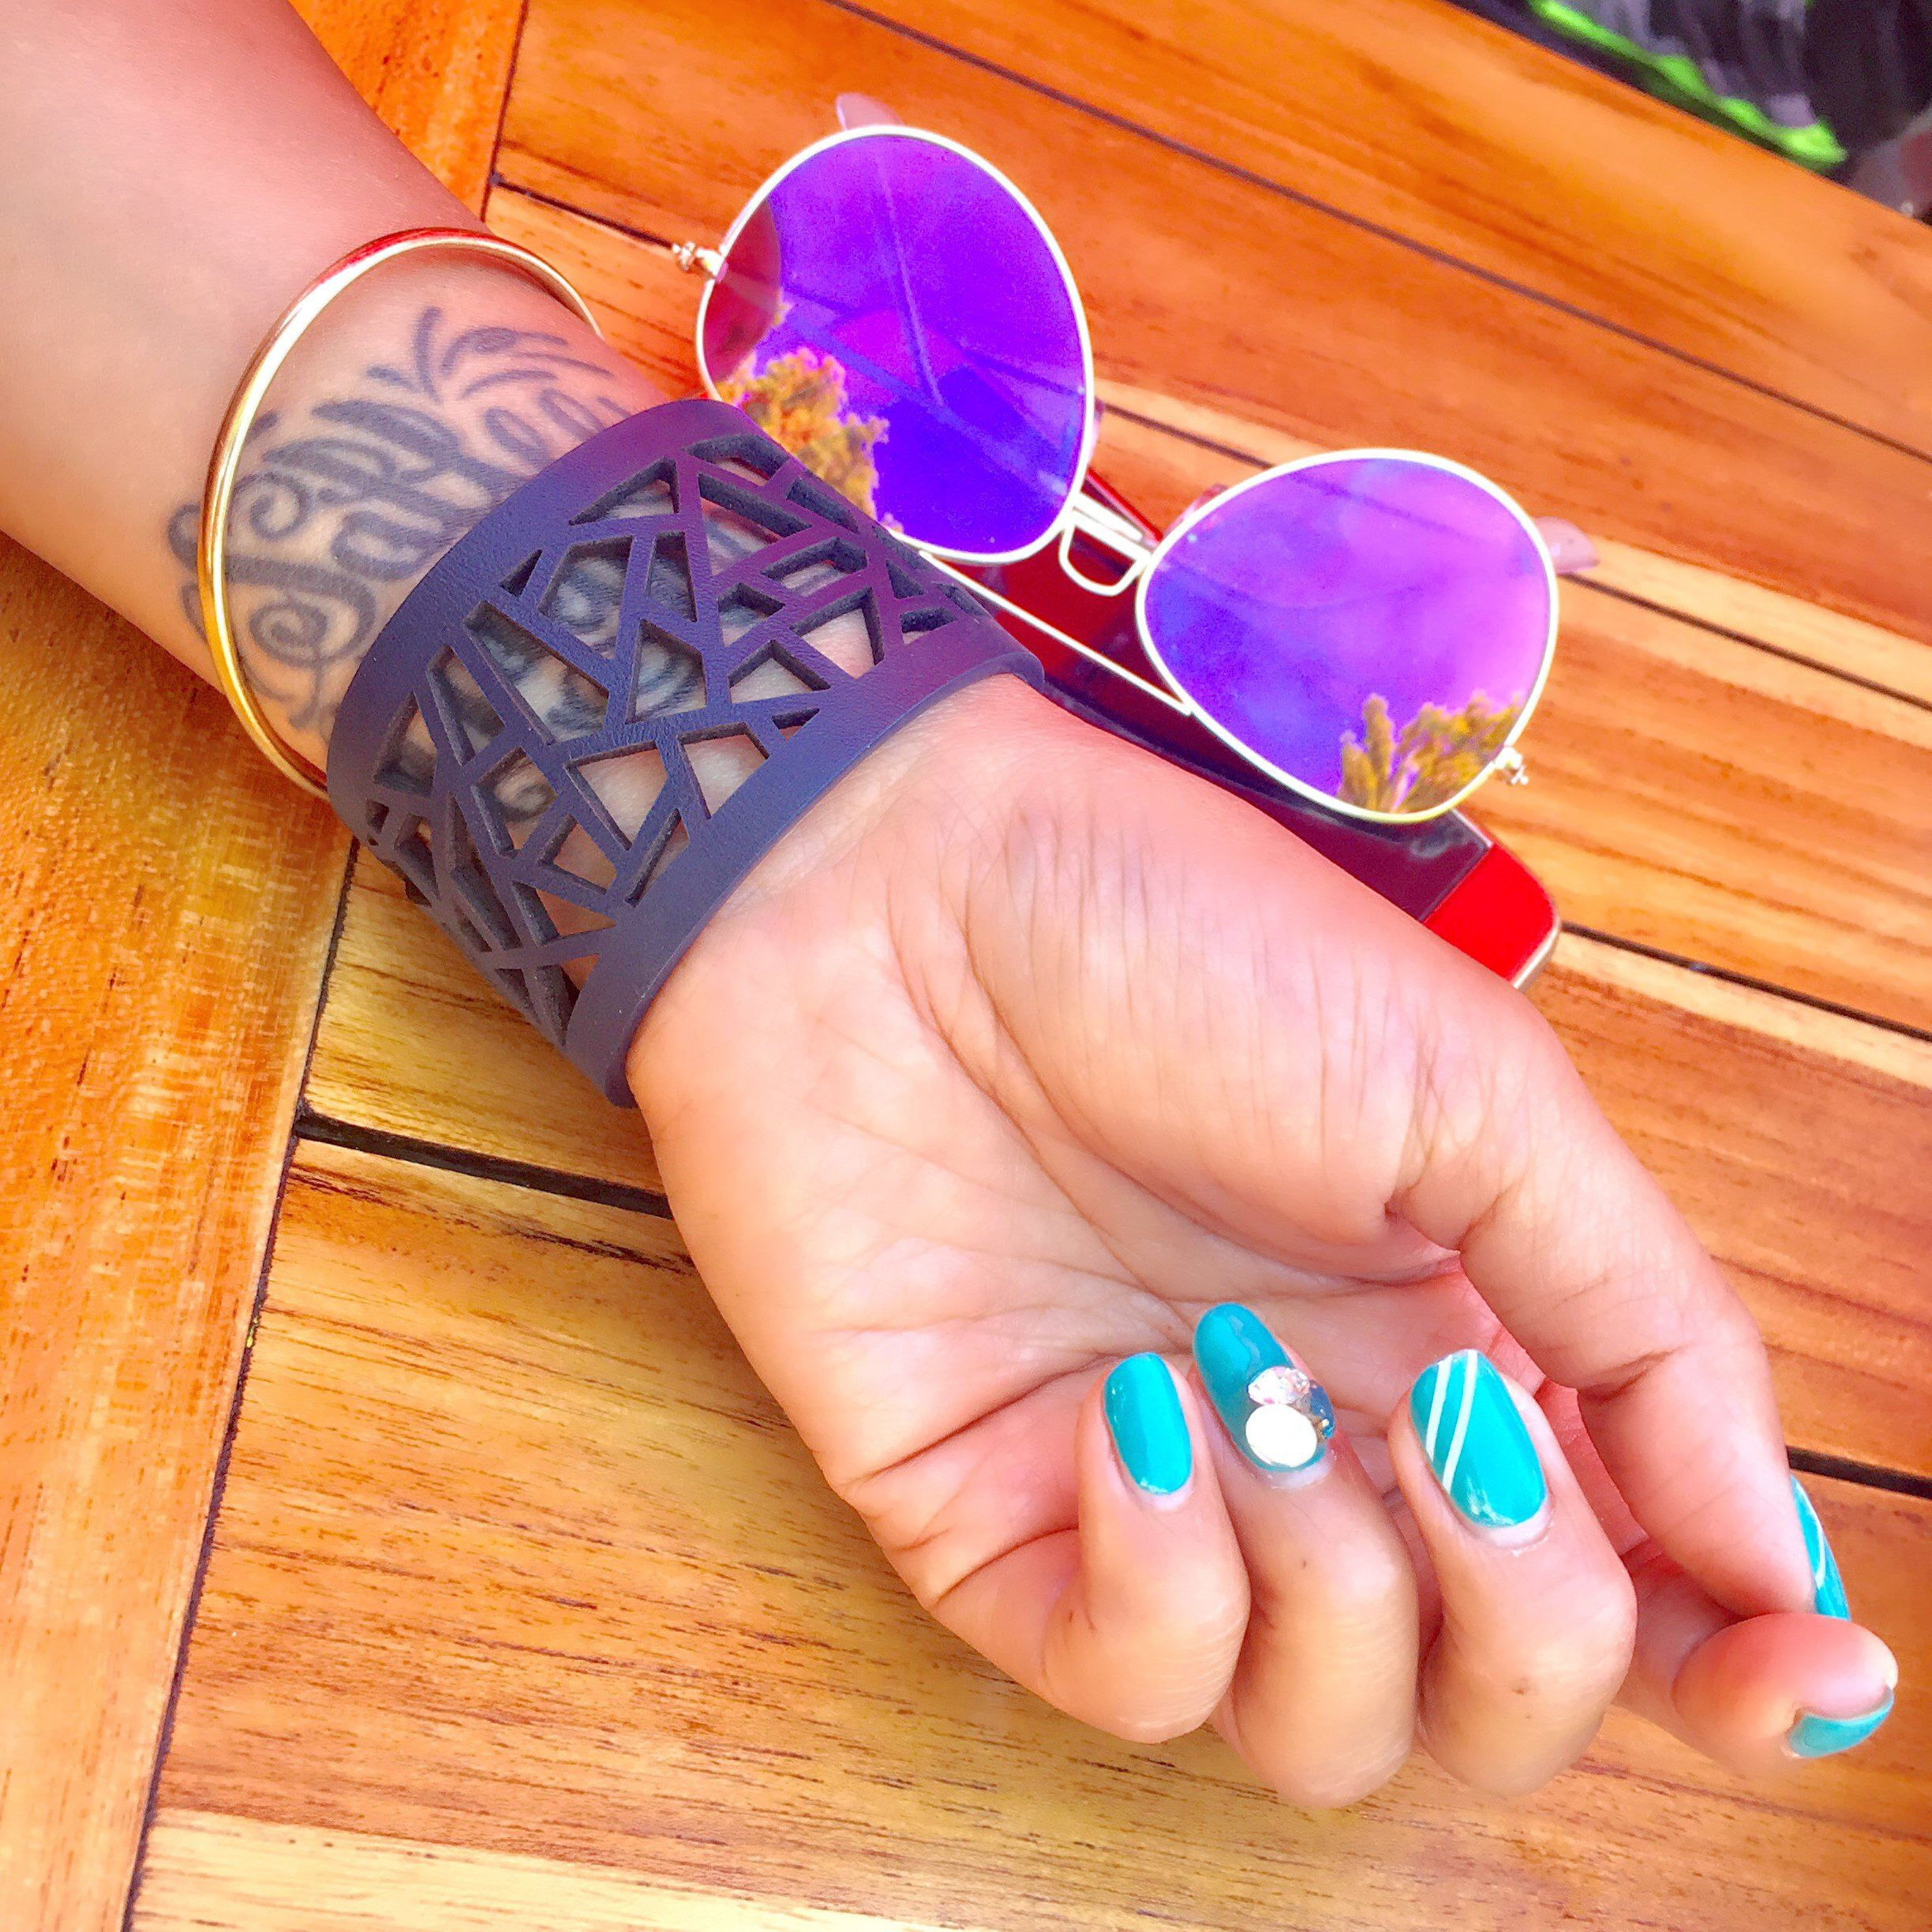 Blue manicured hand with tattoo against a table next to sunglasses wearing Margaret - Lattice Leather Laser Cut Bracelet